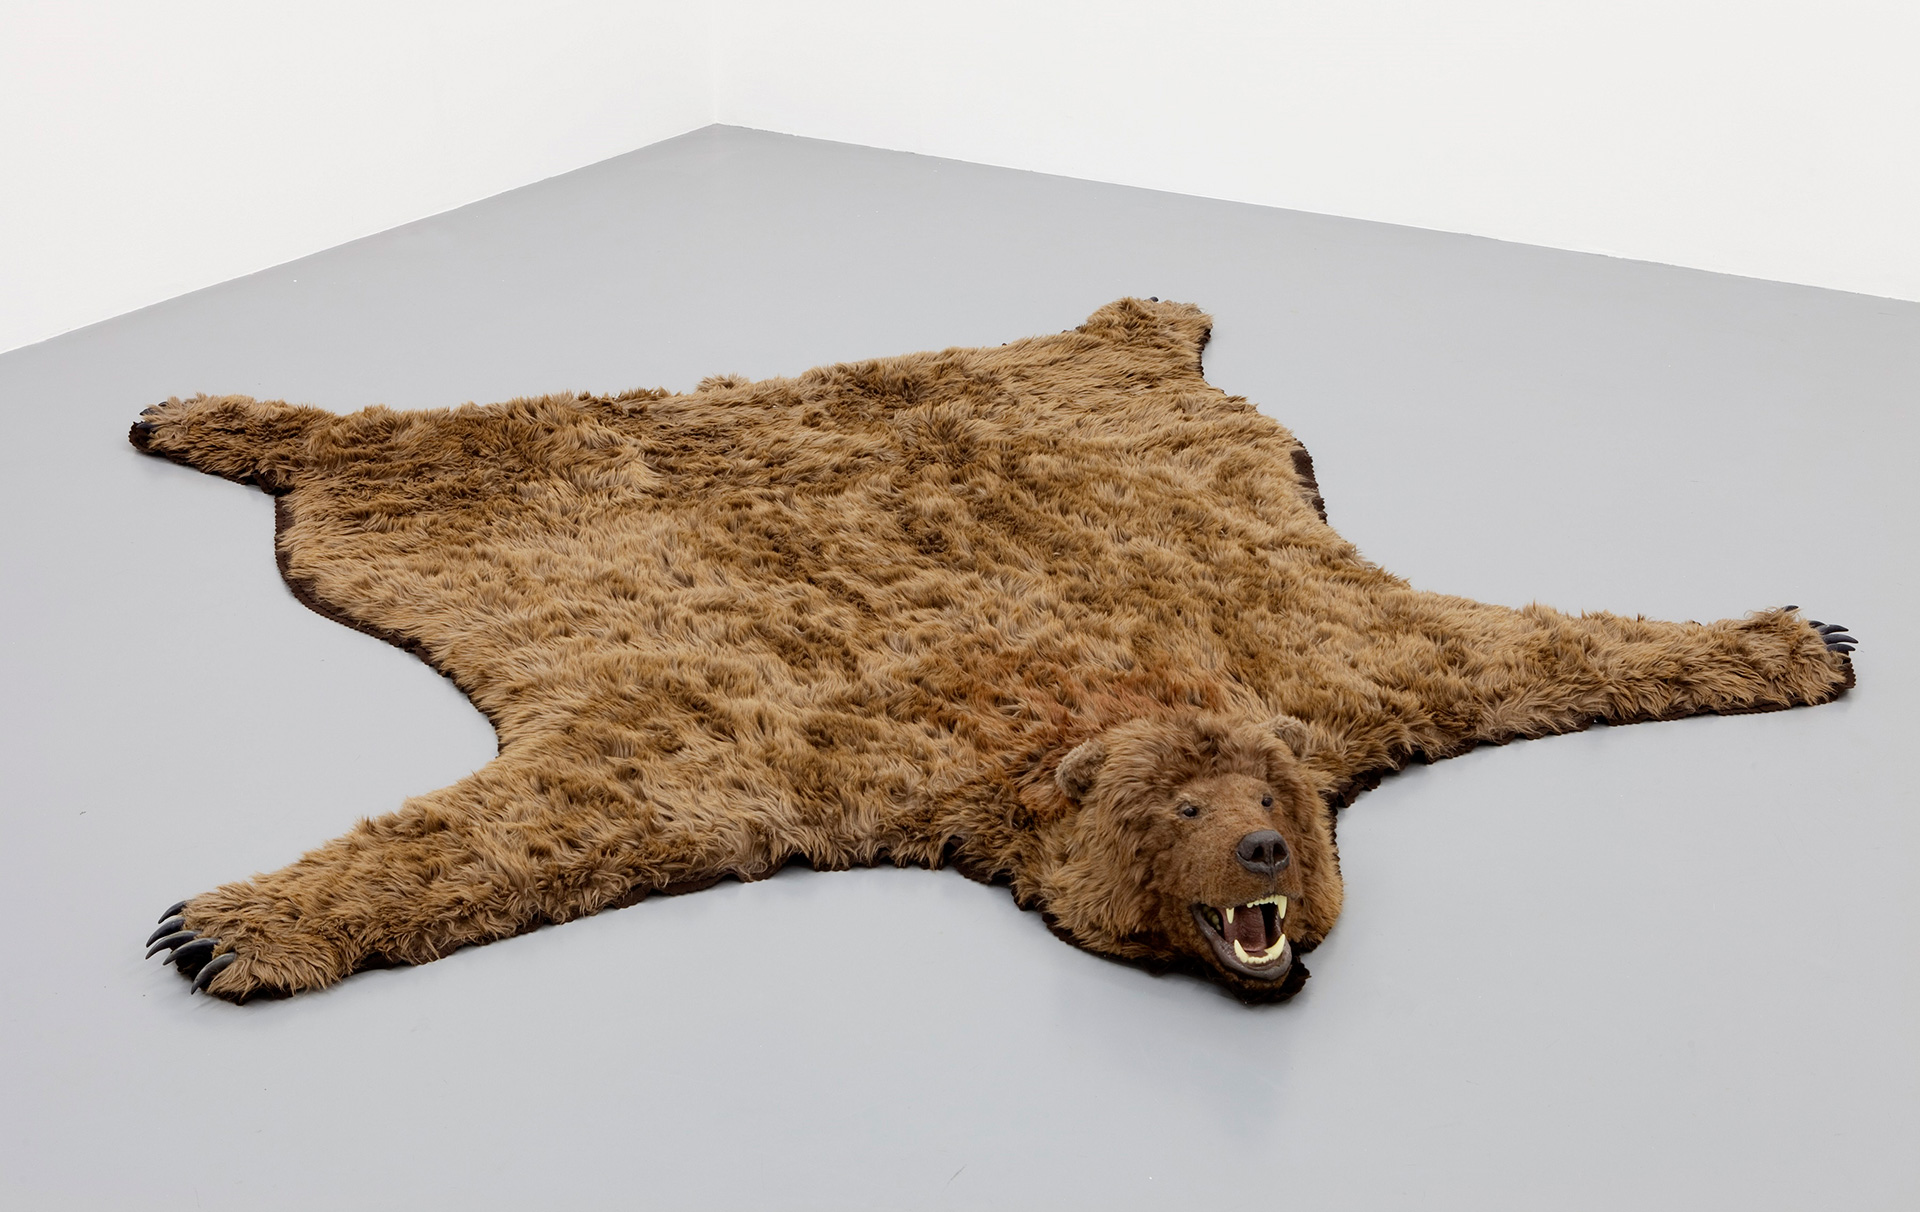 Paola Pivi, Did you know I am single?, 2010, synthetic fur, plastic, paint, resin, 20 x 280 x 244 cm| Paola Pivi. World Record| STIR